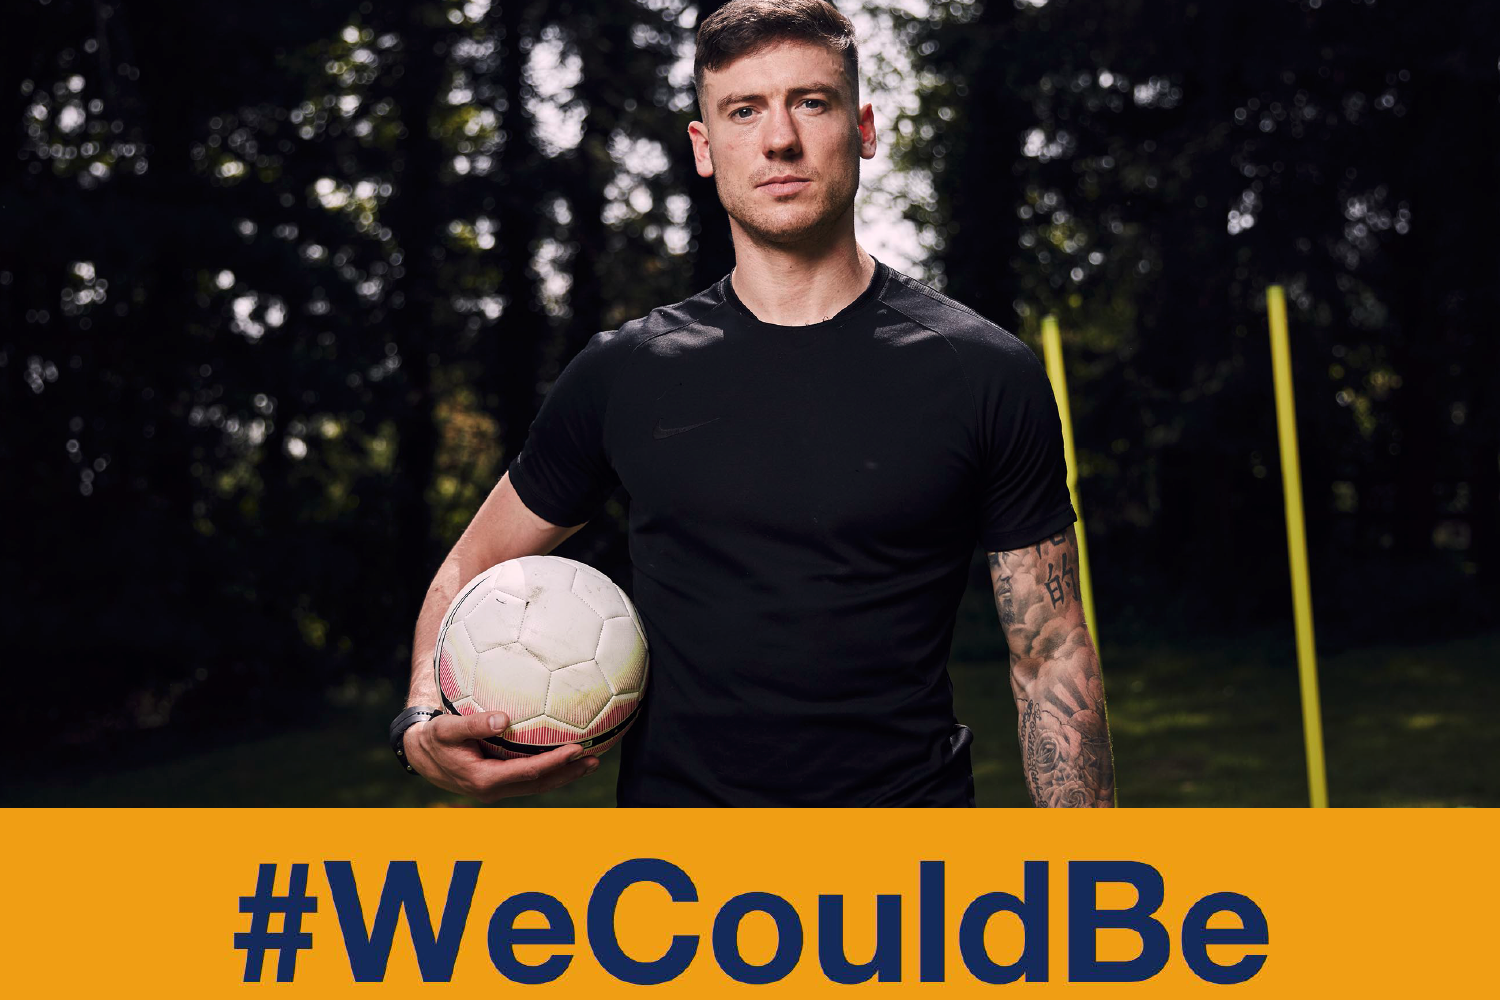 #WeCouldBe - Jack Rutter supports Disability Sports Coach campaign